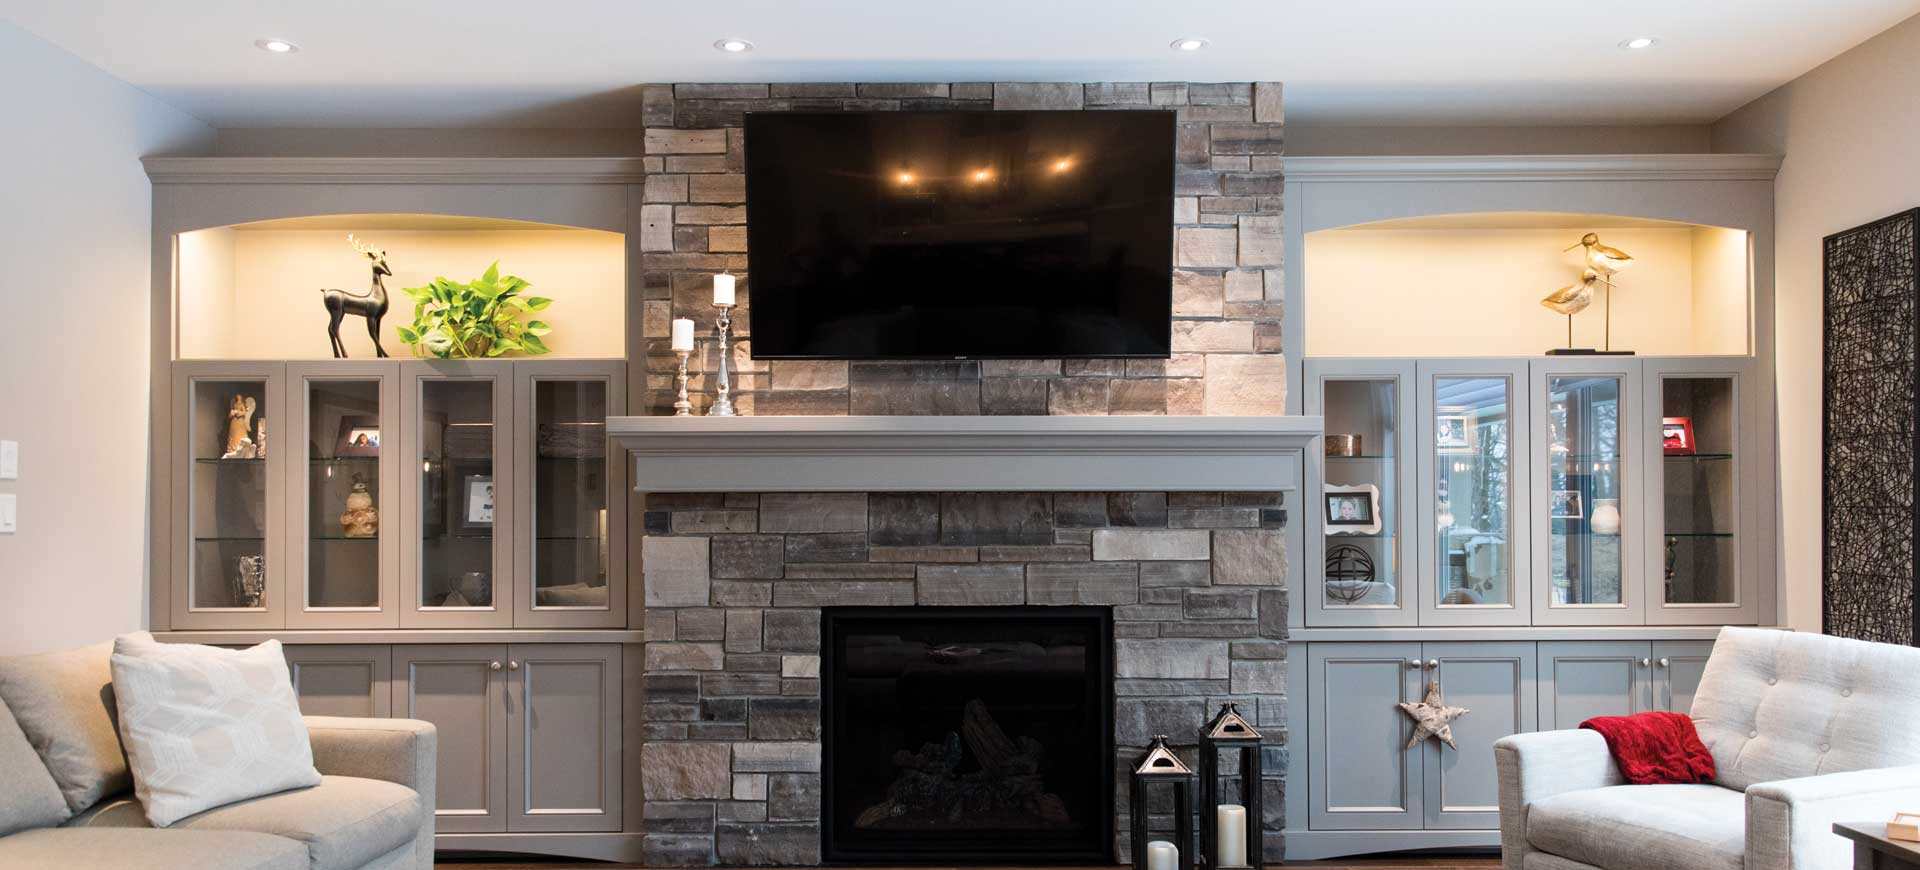 taupe fireplace mantle and cabinets